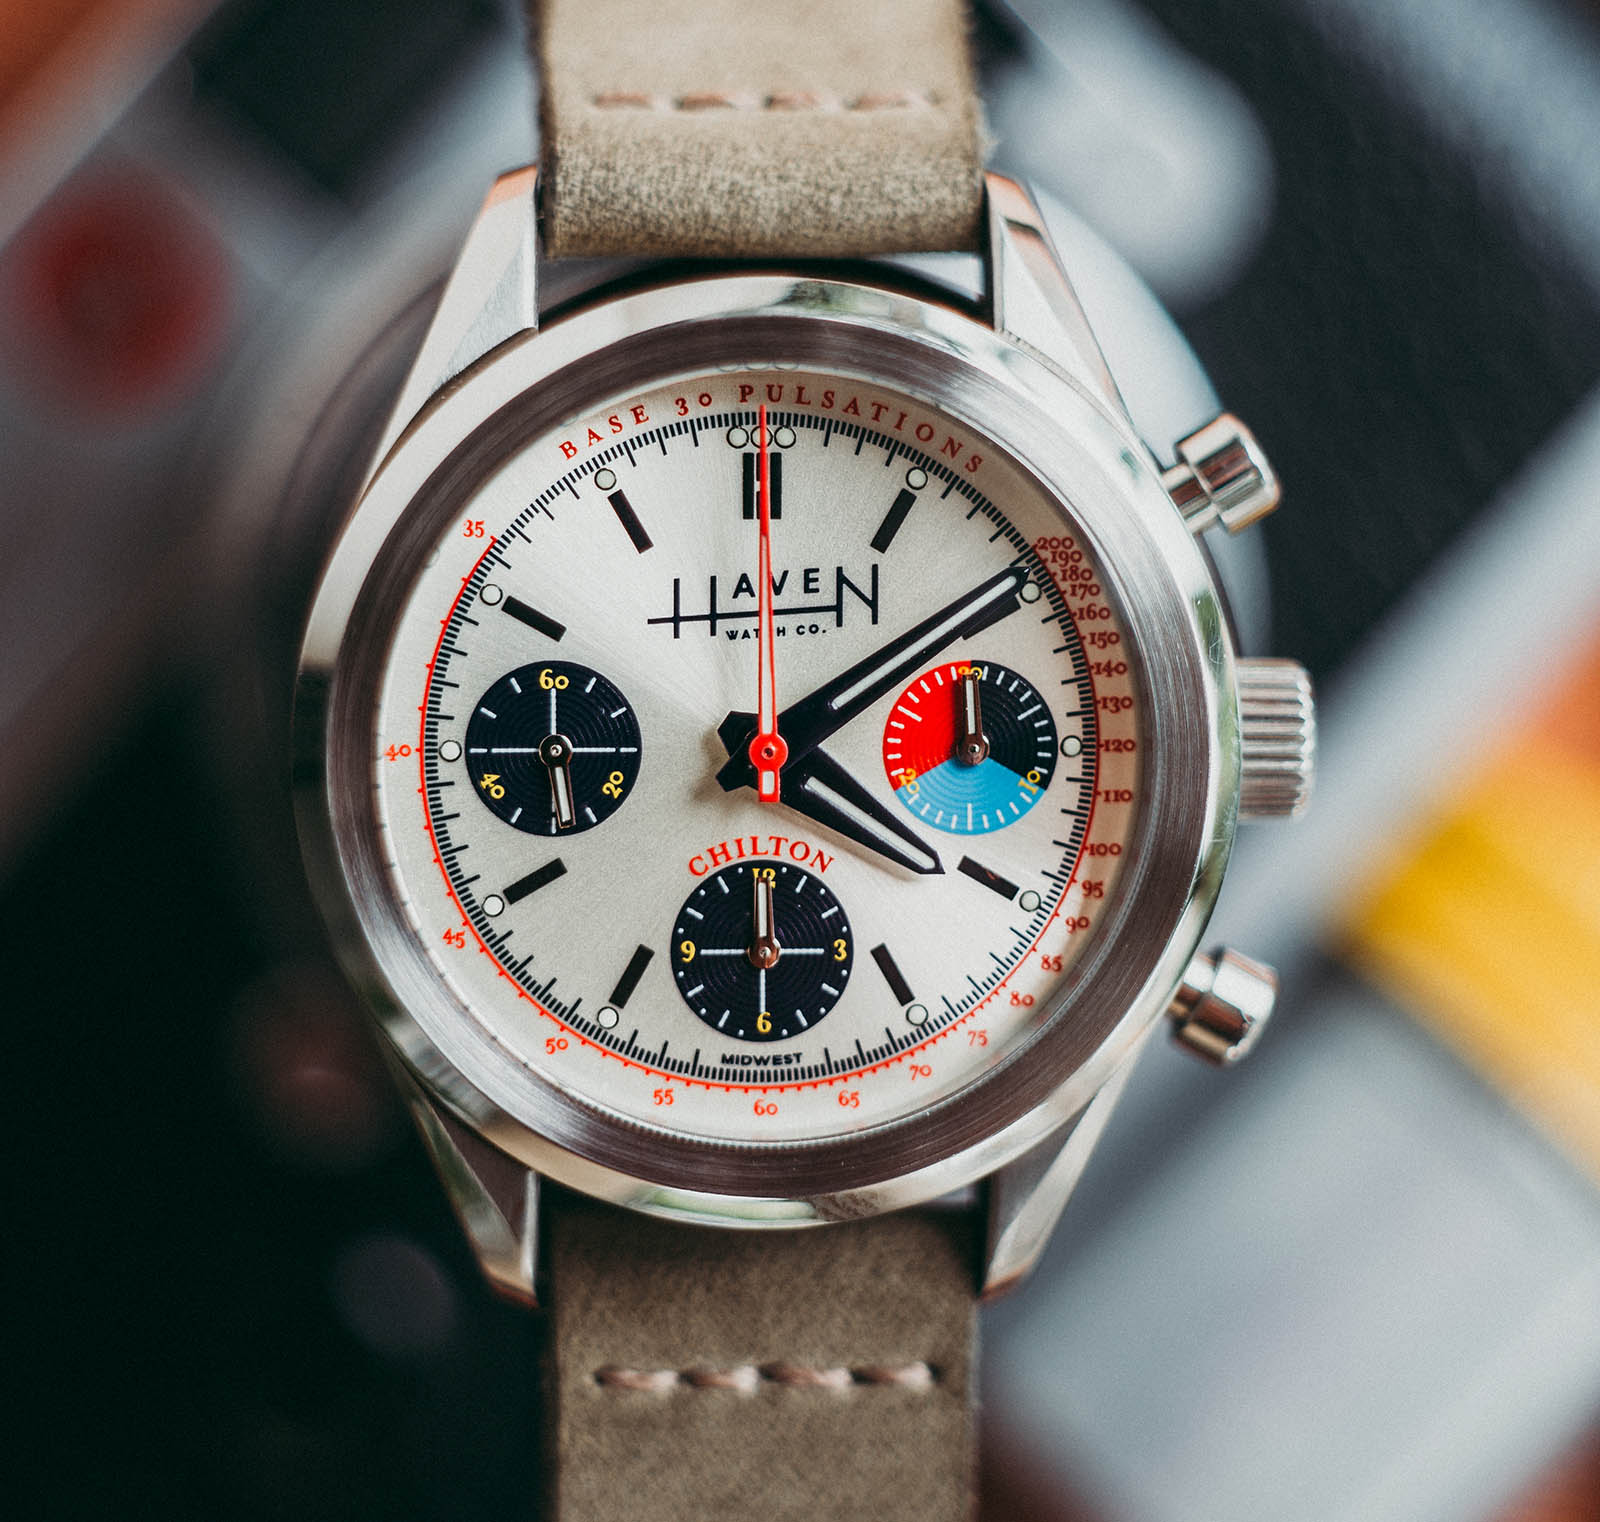 Haven Chilton Chronograph 4